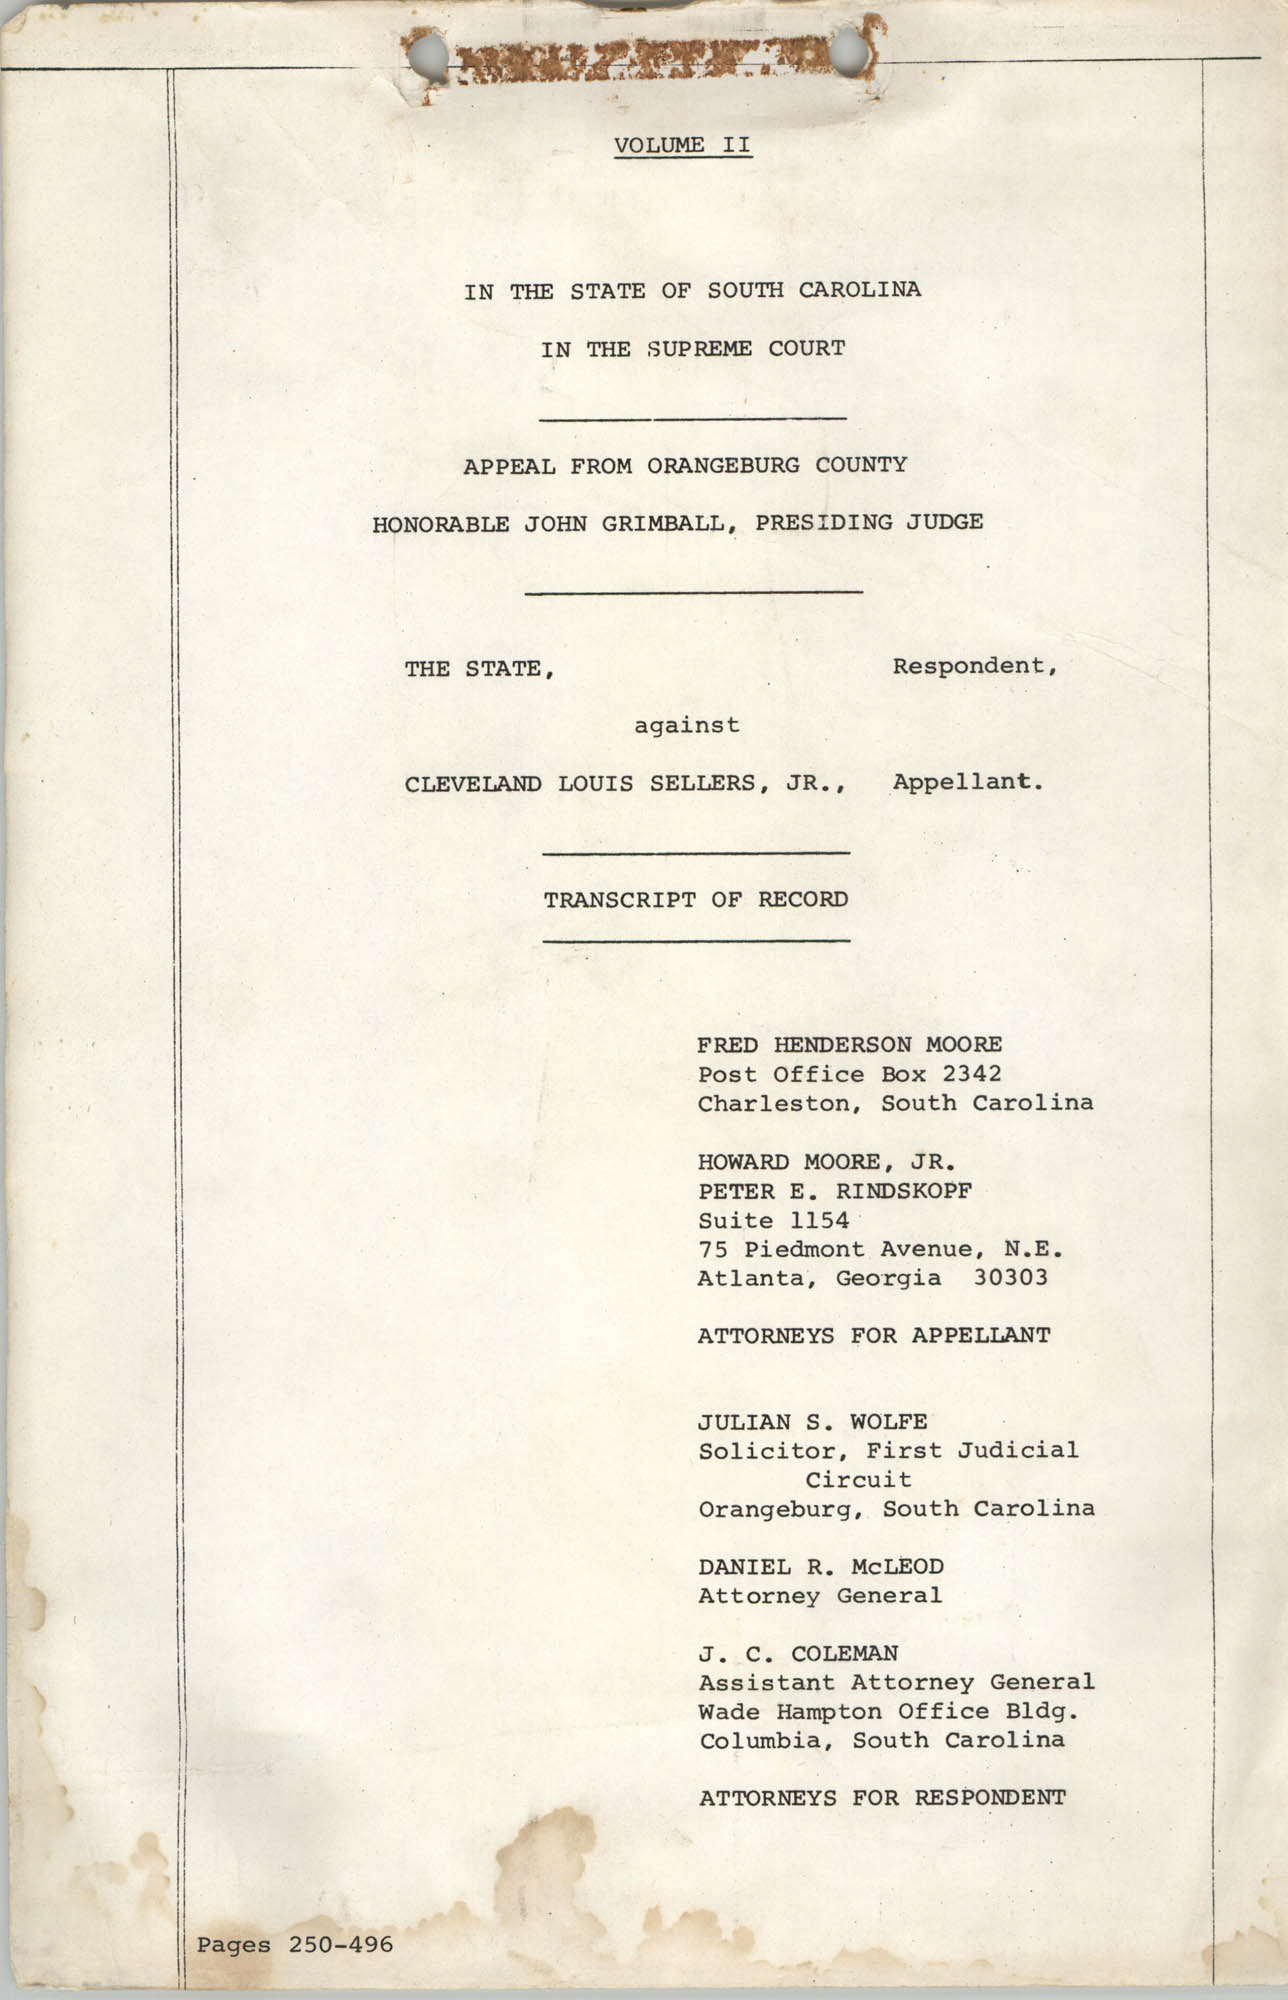 Appeal from Orangeburg County, The State against Cleveland Louis Sellers, Jr., Volume II, Cover